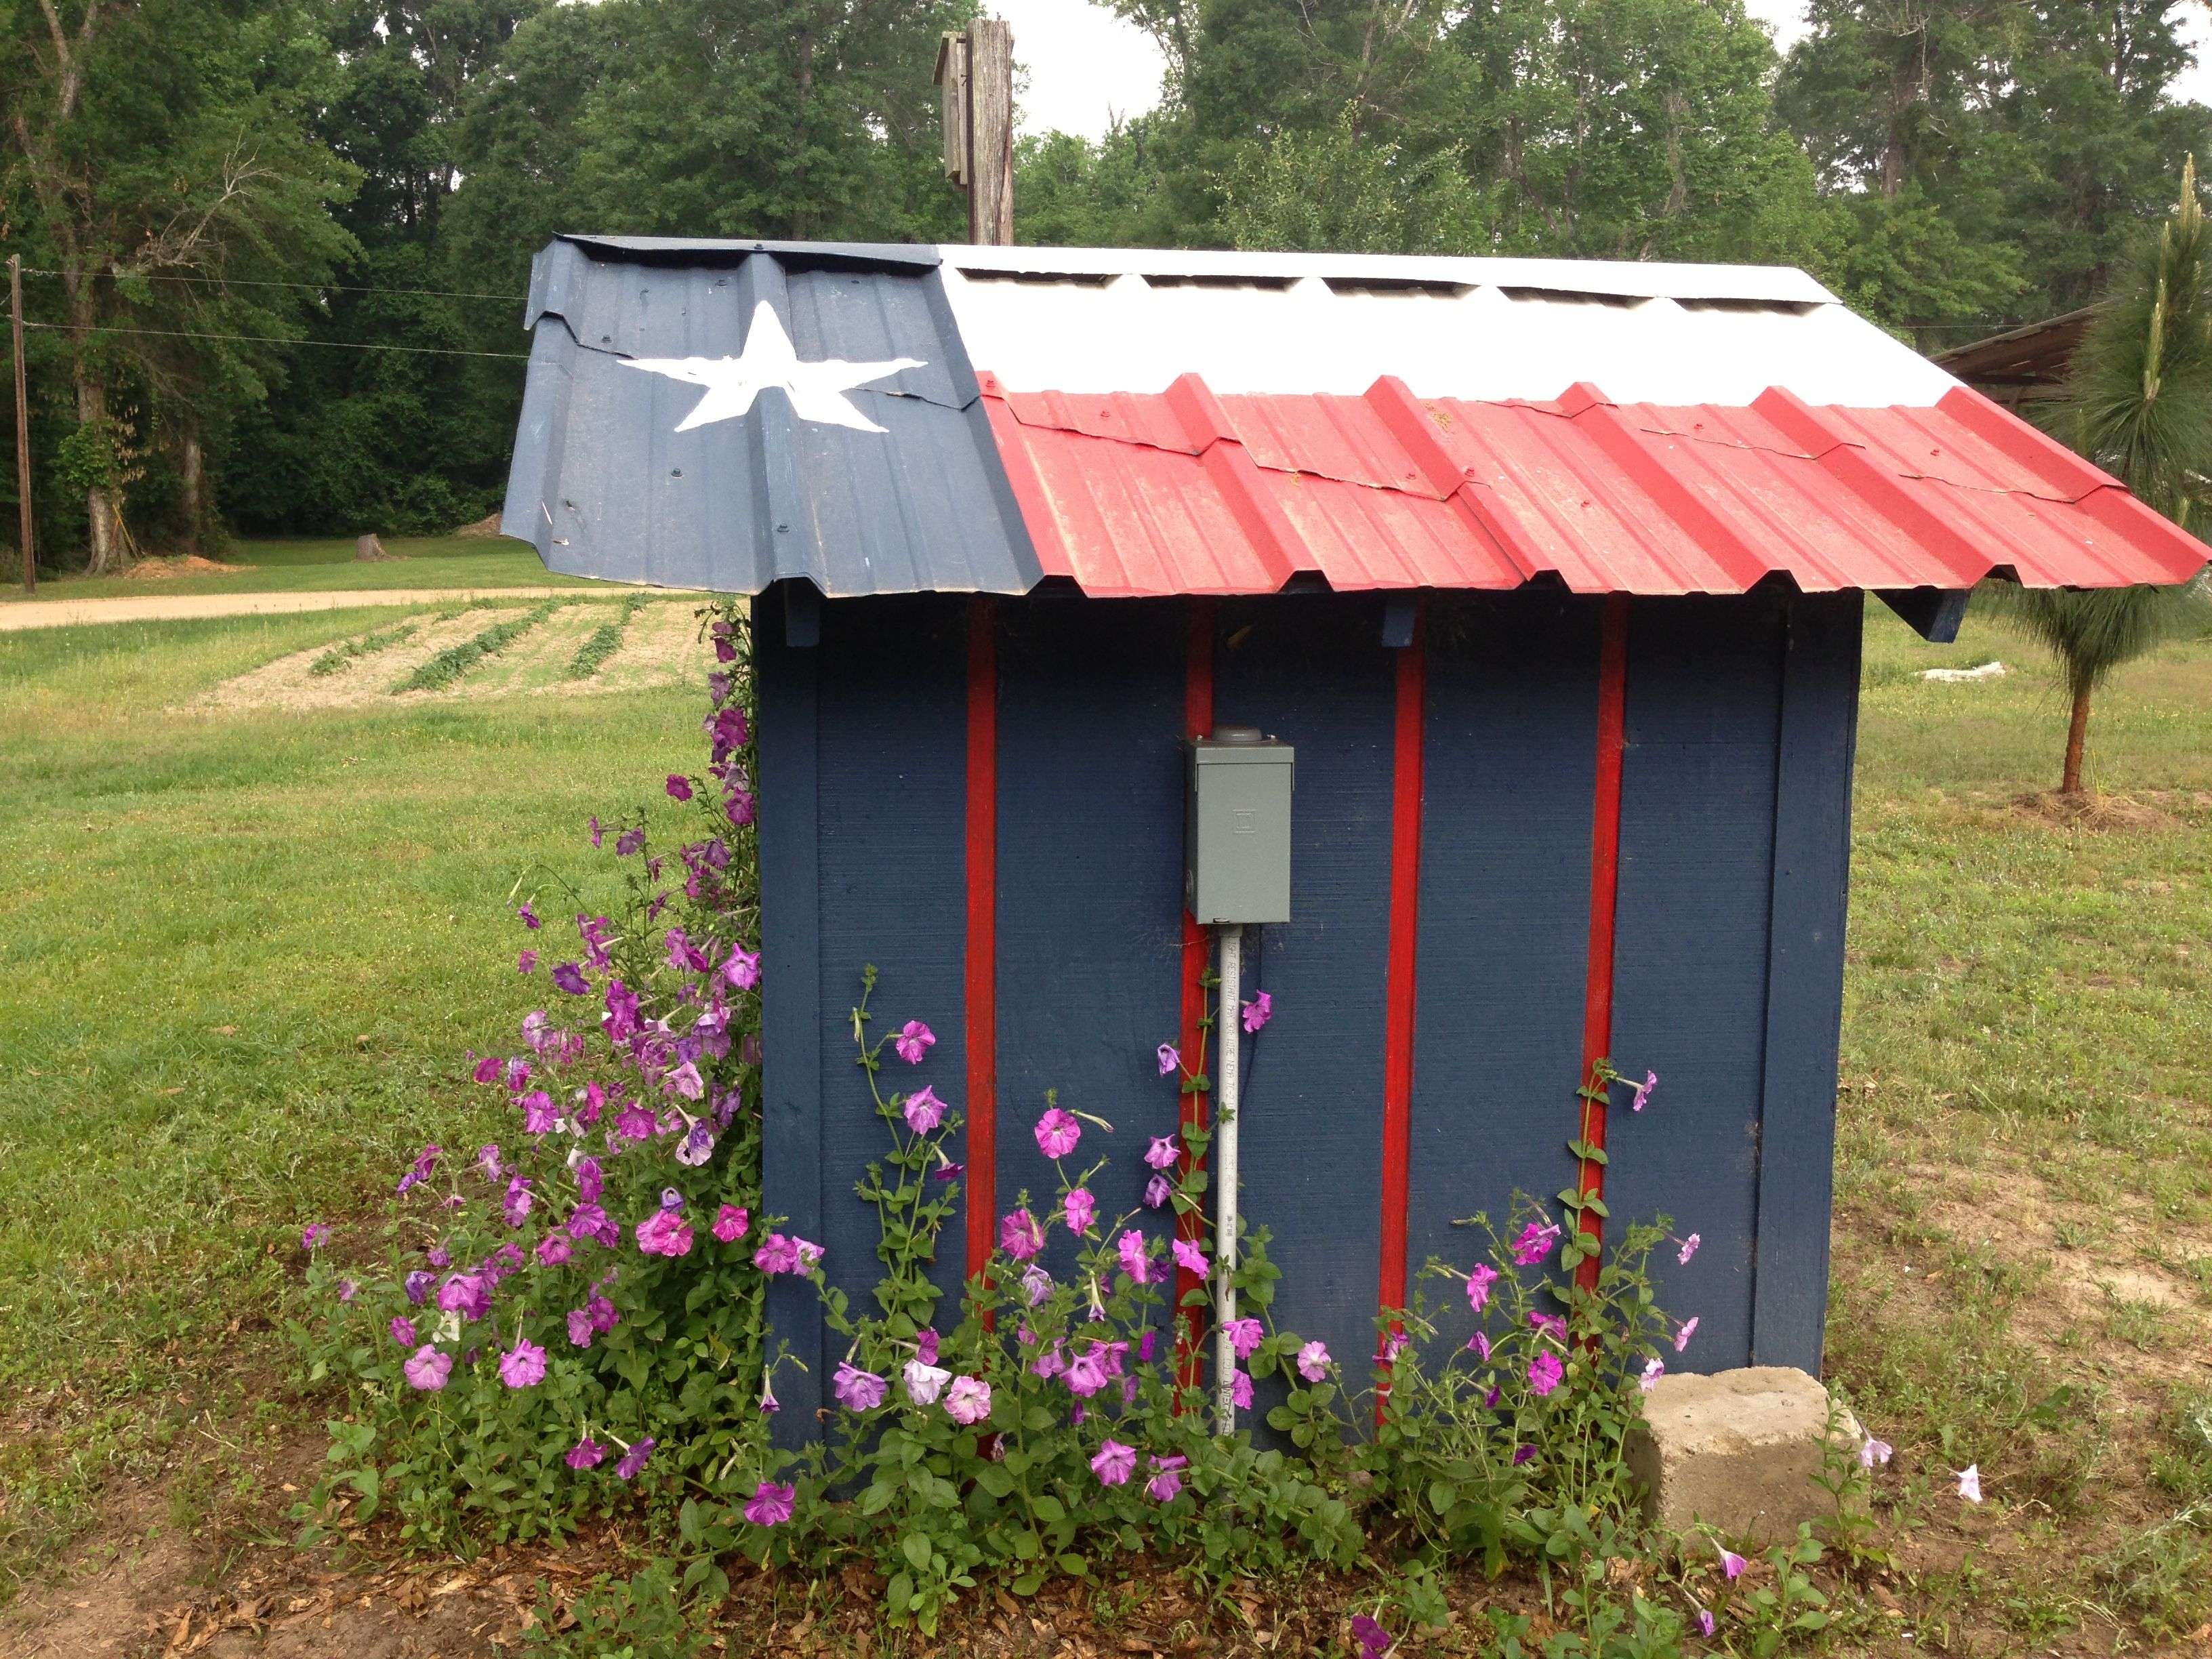 Minus The Artistic Paint Job Pump House Backyard For Kids Shed Design